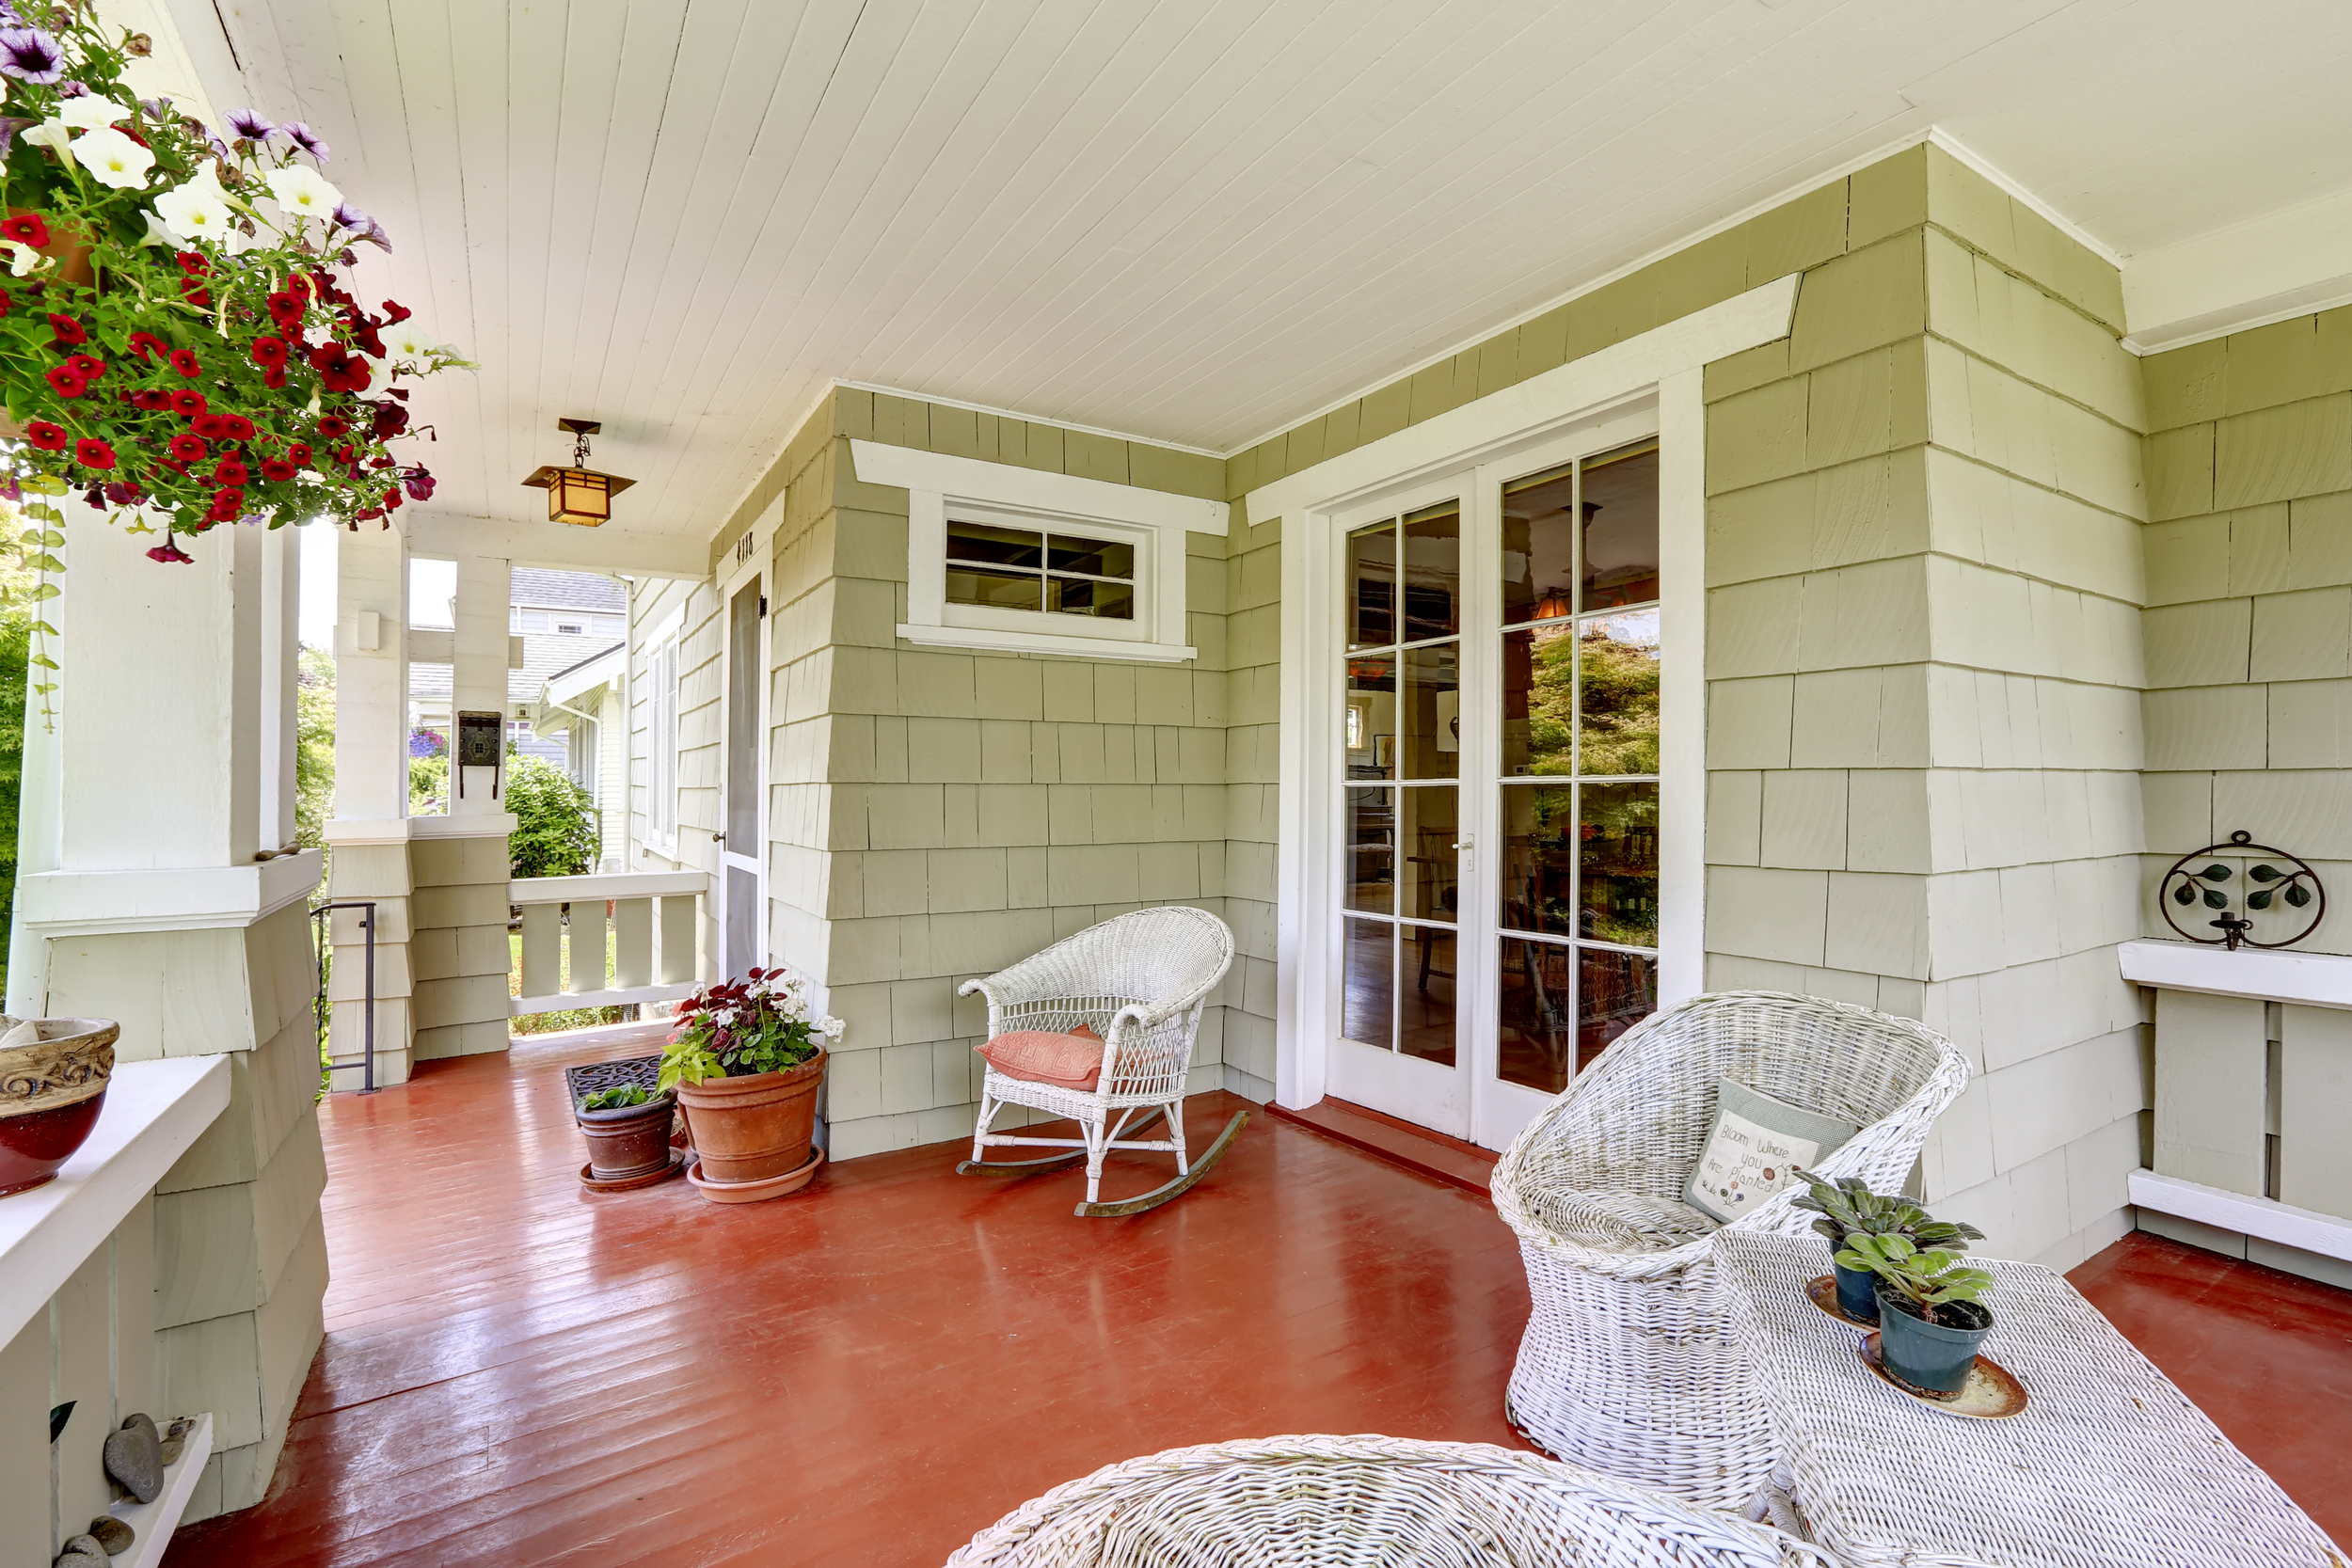 Front porch outdoor room with sitting area and sliding glass door, green paint, white furniture